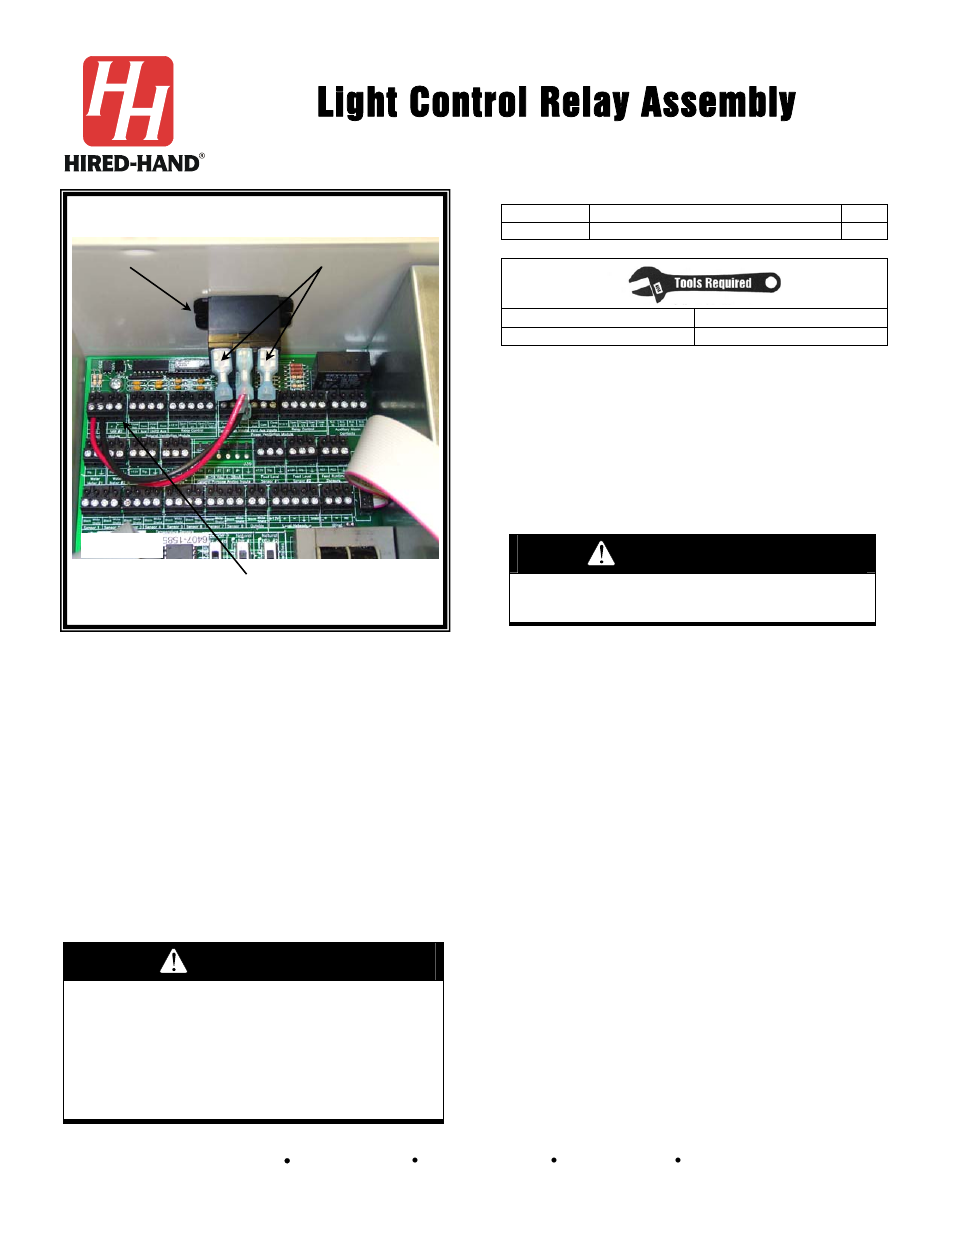 Hired Hand Evolution Series 3000 3001 Light Control Relay Assembly Read Wiring Diagram User Manual 6 Pages Also For 1200